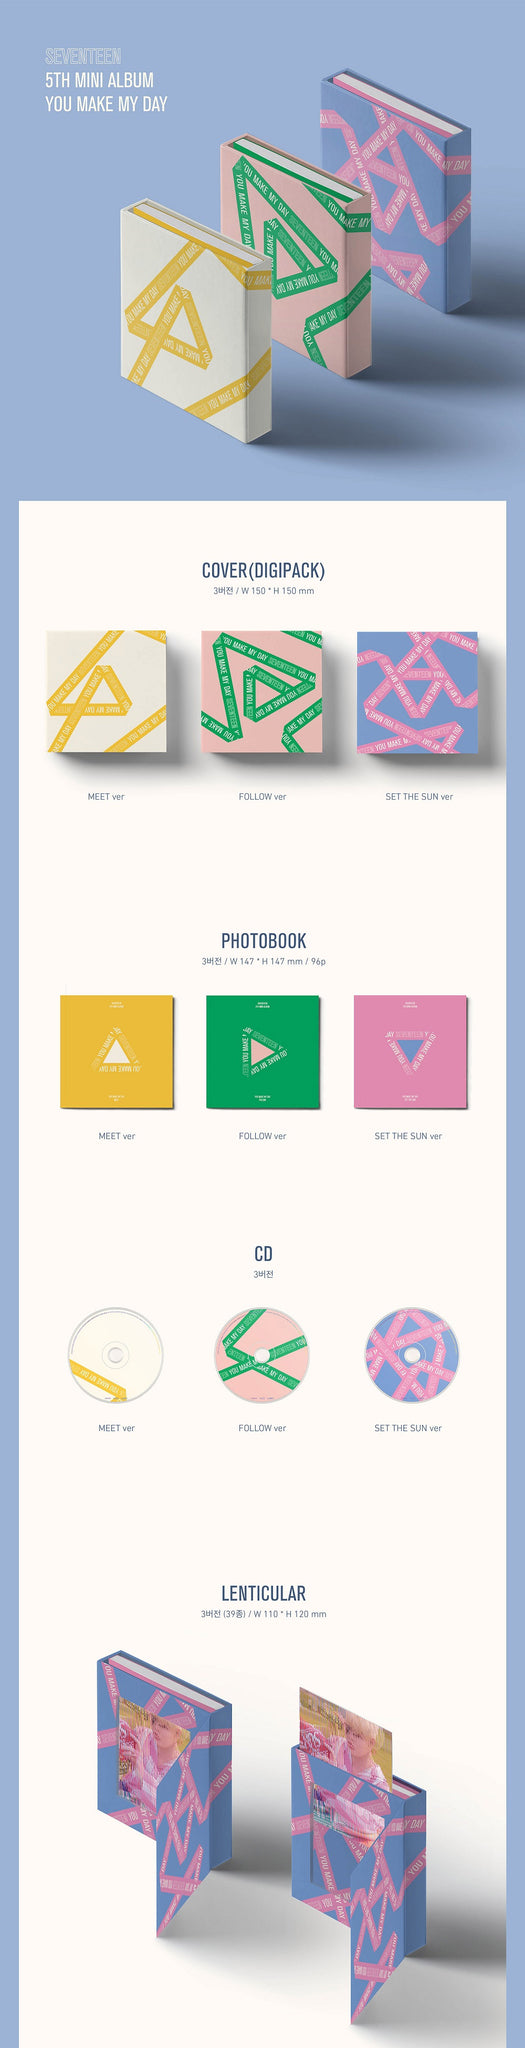 Seventeen 5th Mini Album You Make My Day Cho Dabi Trading Cdt Going 3th Preview